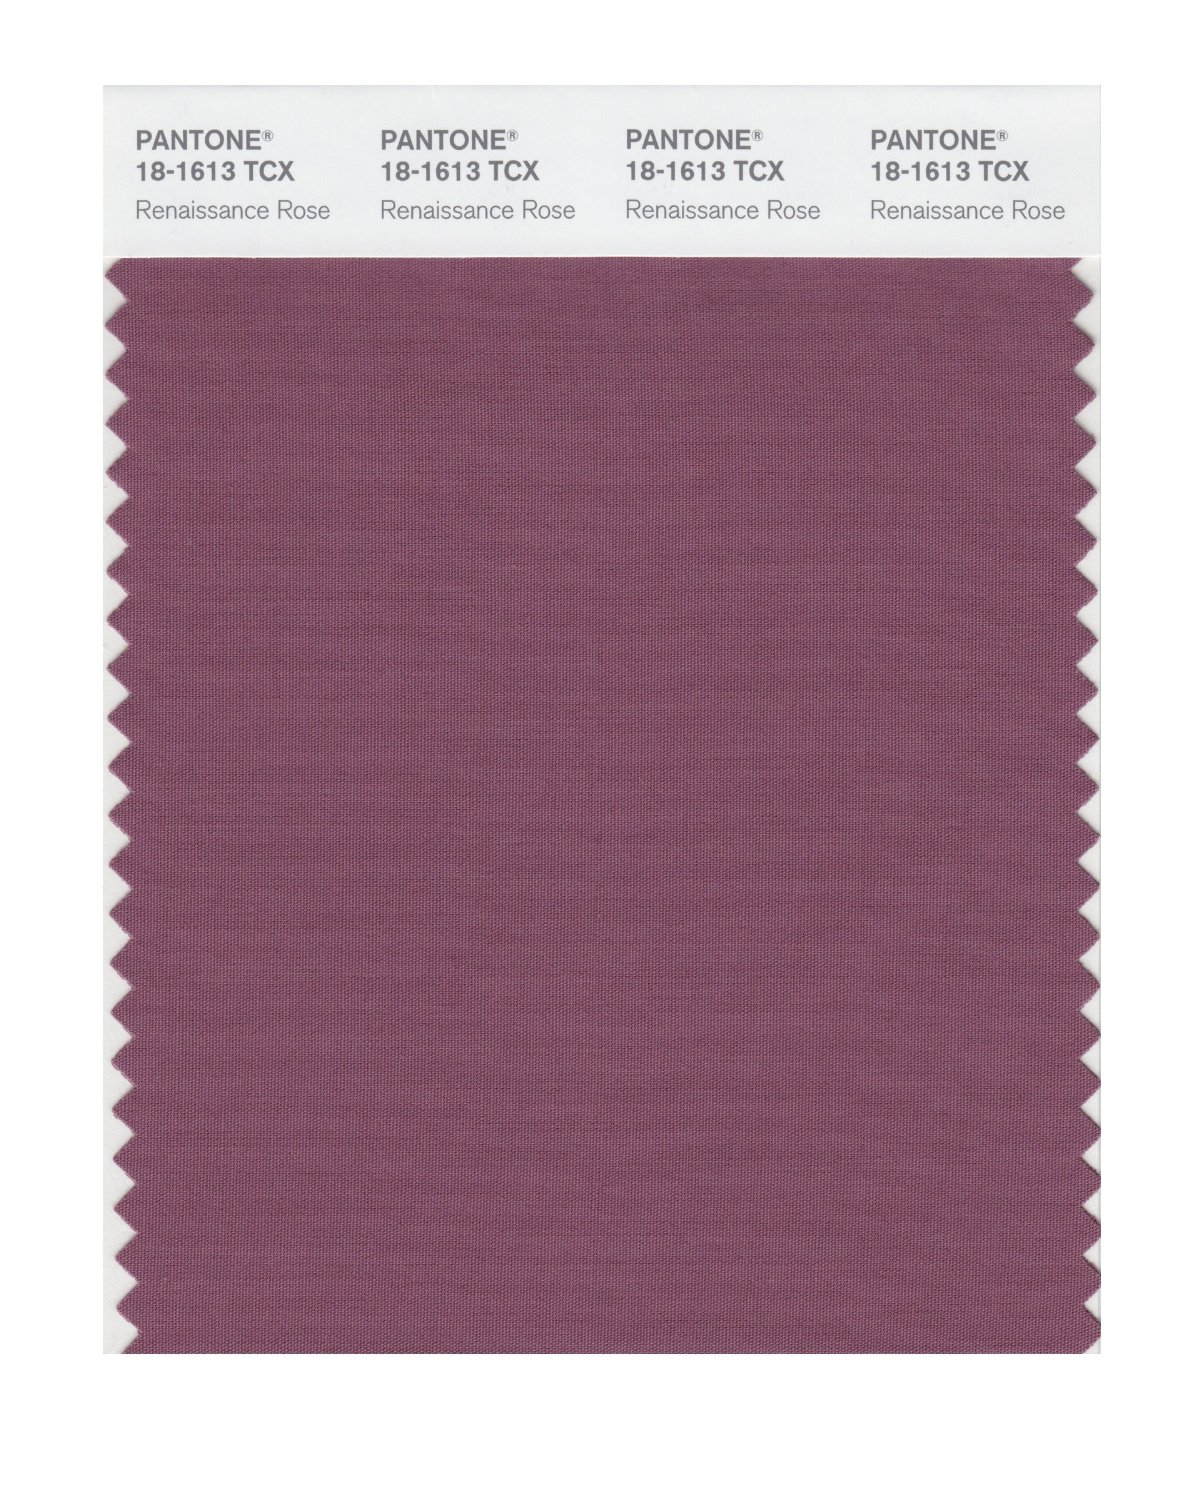 Pantone Smart Swatch 18-1613 Renaissance Rose